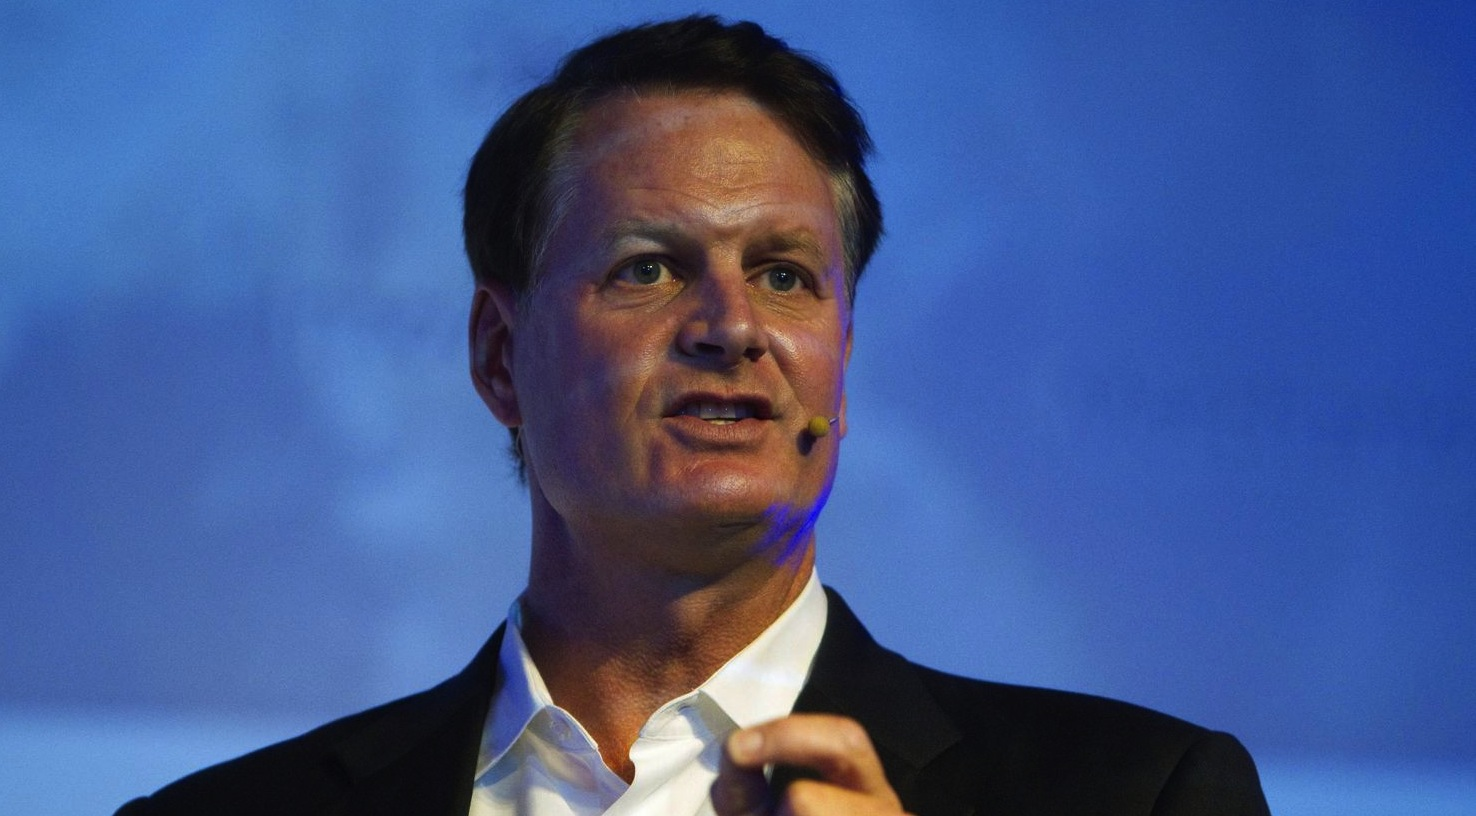 John Donahoe, CEO of eBay, praises Corra's growth and success